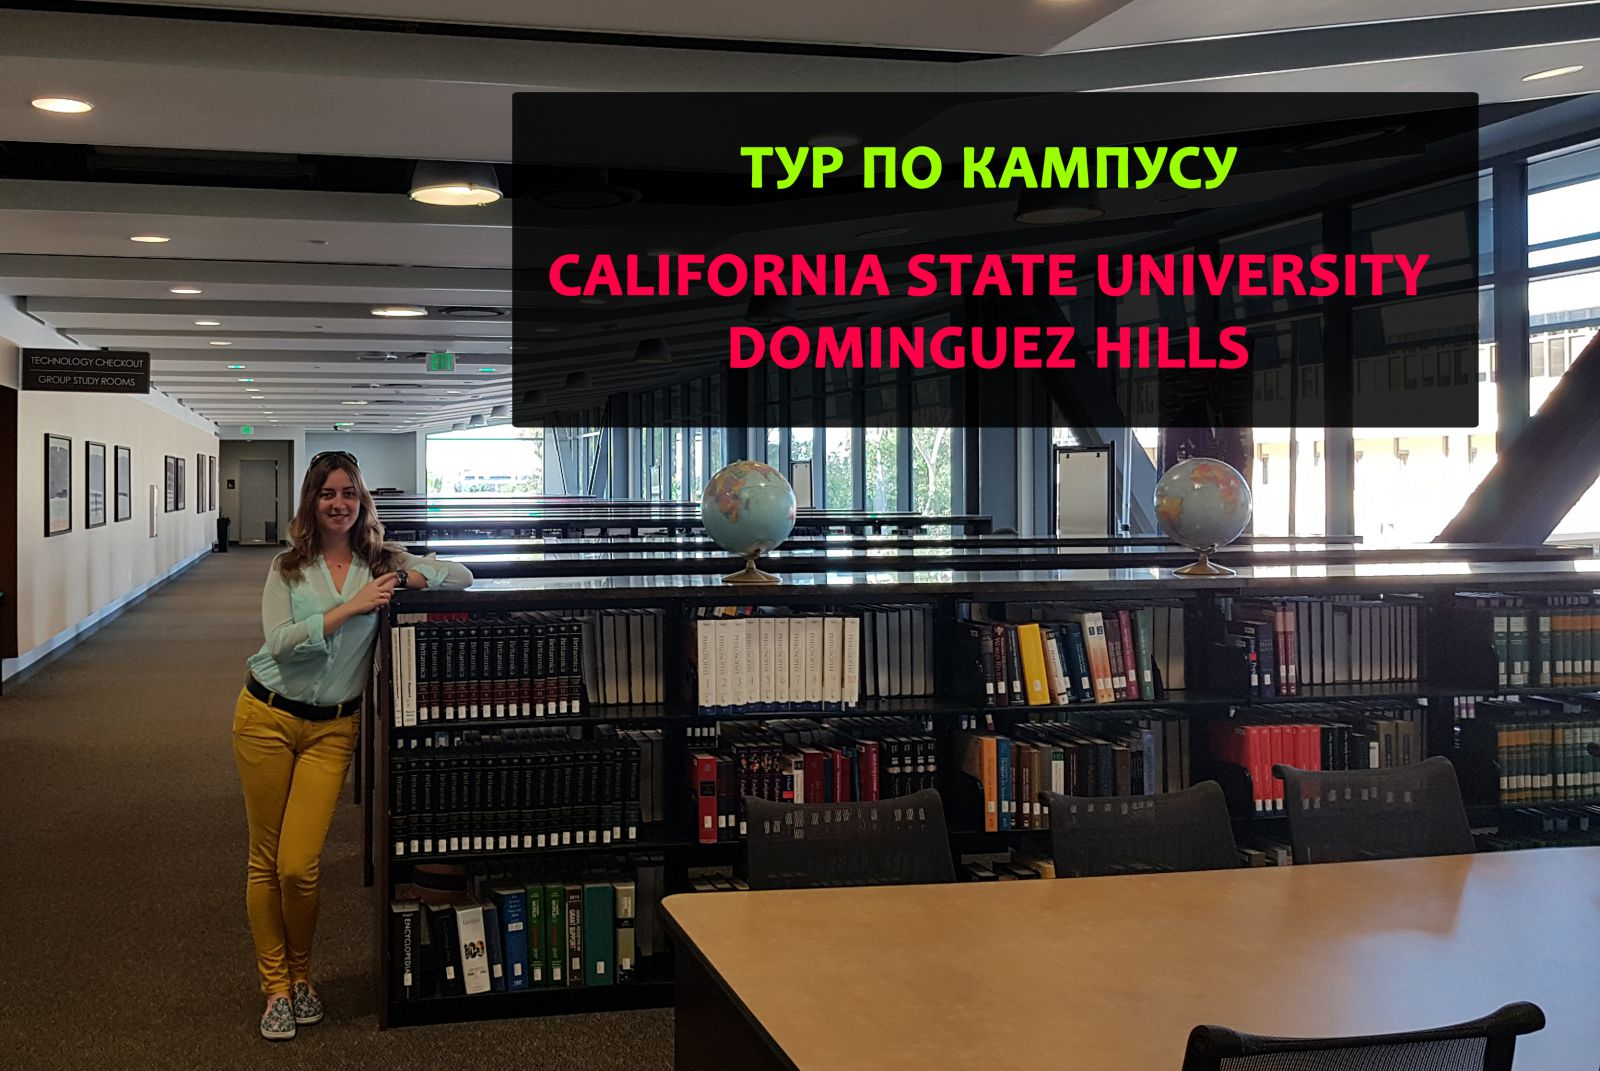 california state university domiguez hills